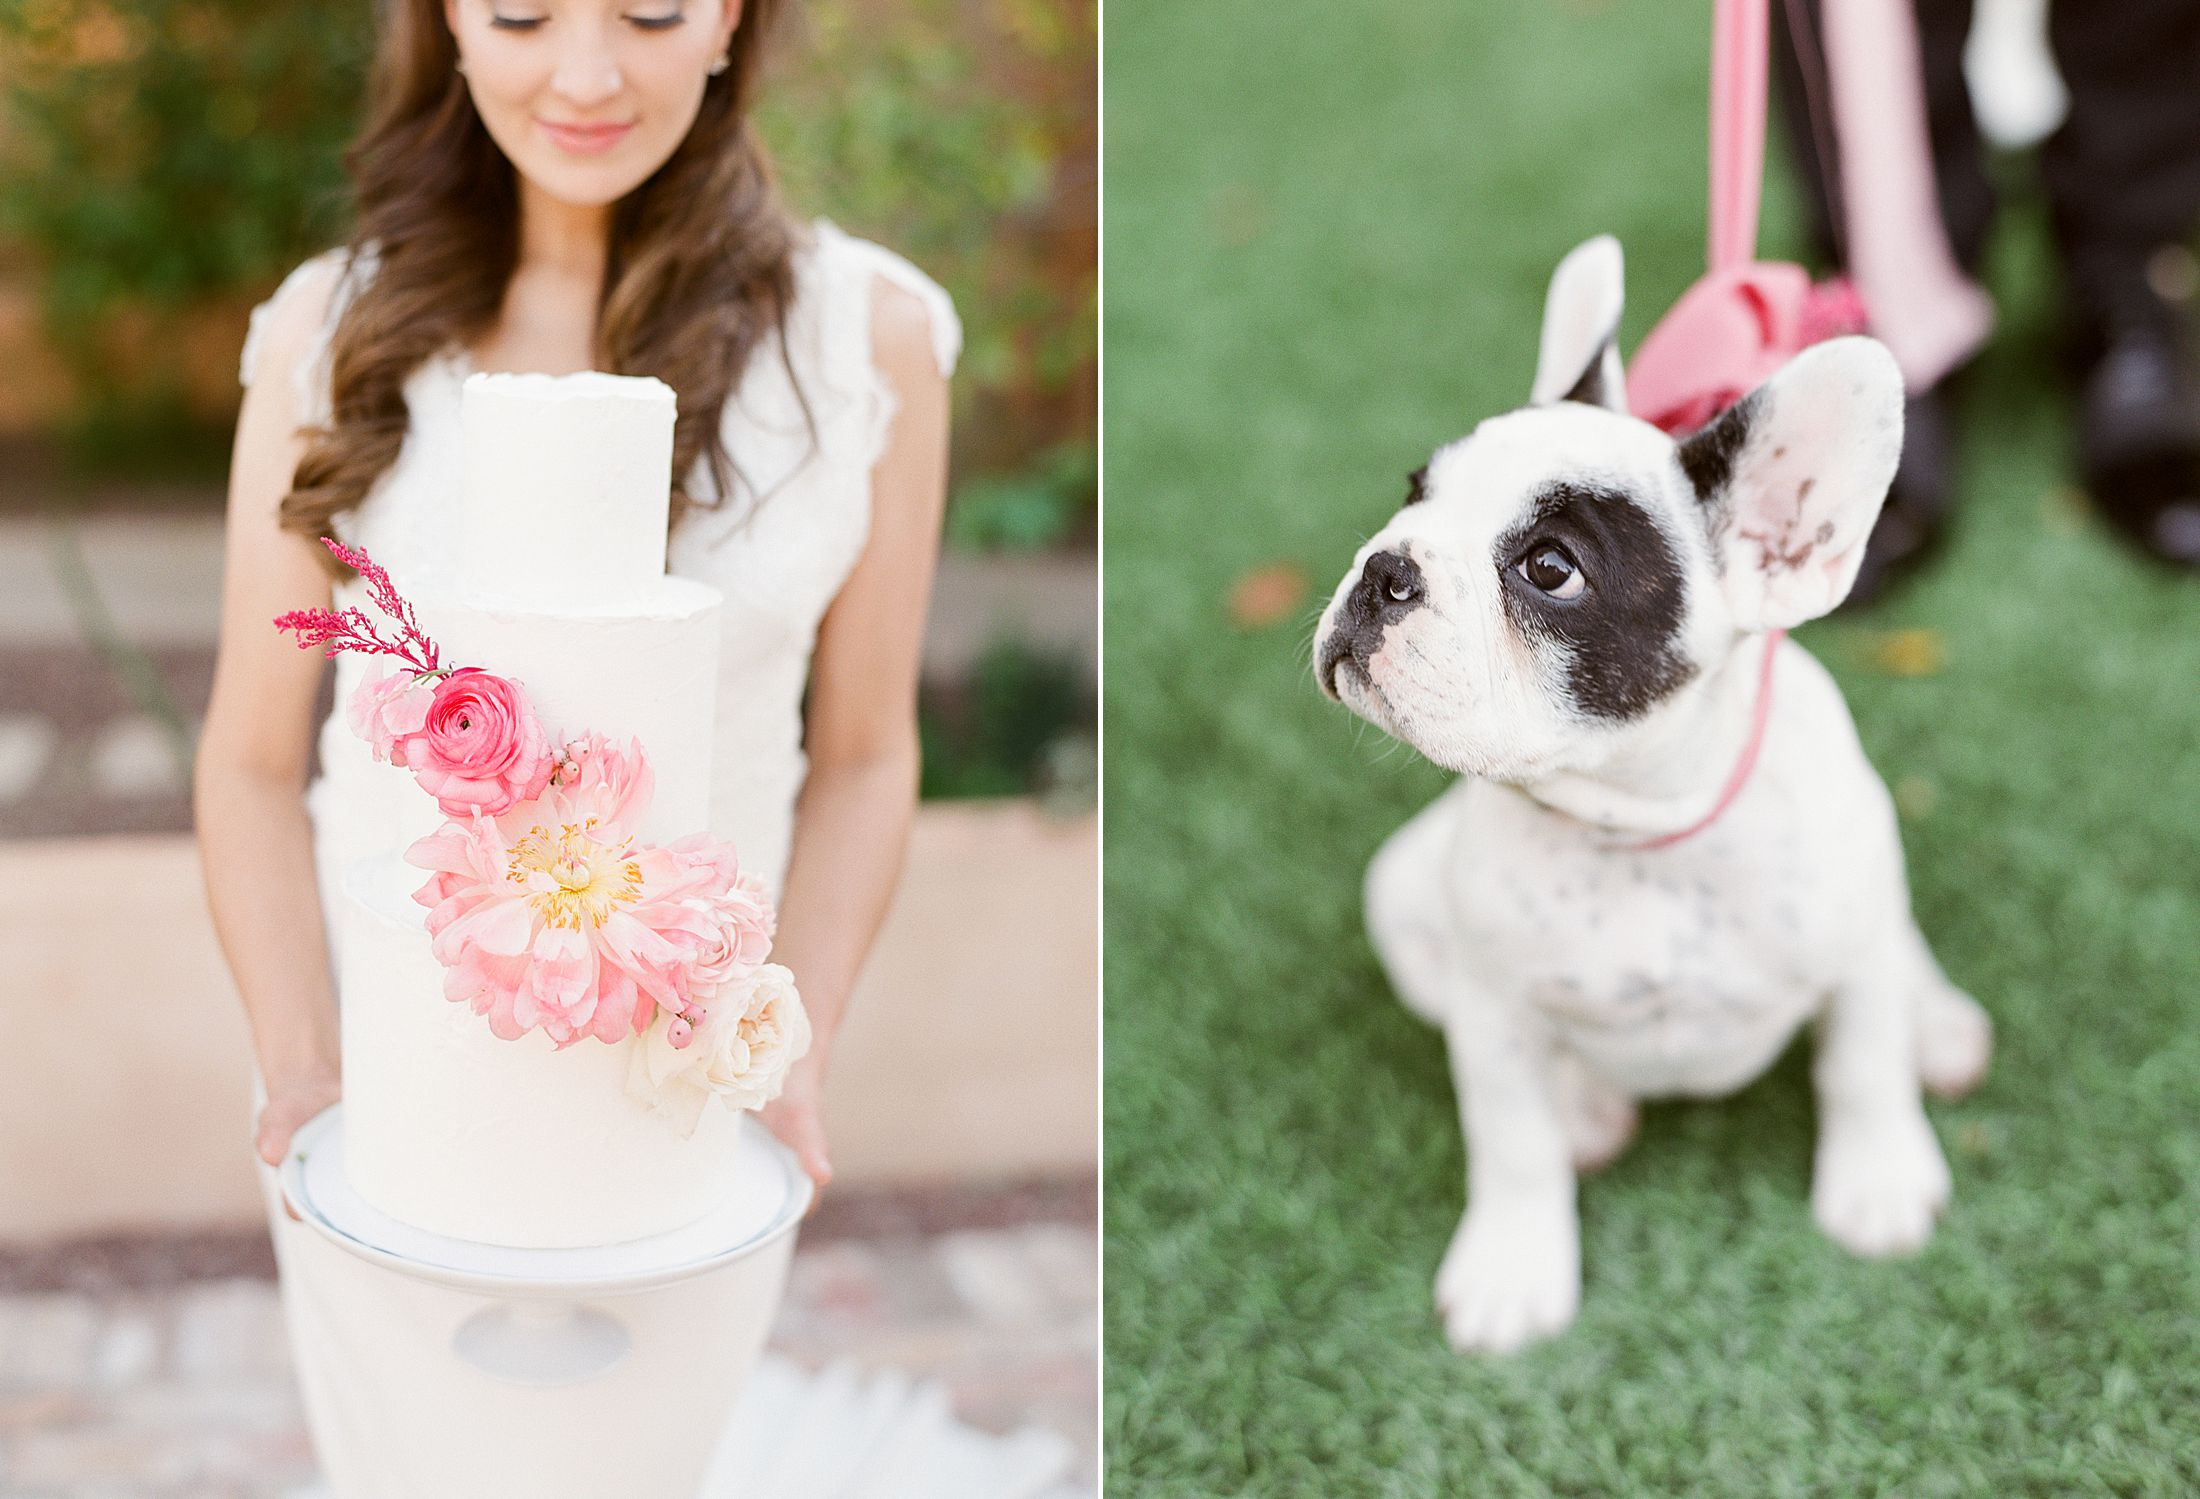 Pink Ombre Wedding Inspiration on Style Me Pretty - Royal Palms Wedding - Scottsdale Wedding - Ashley Baumgartner - Bloom and Blueprint - Wedding Puppies - Bulldog Puppies_0014.jpg